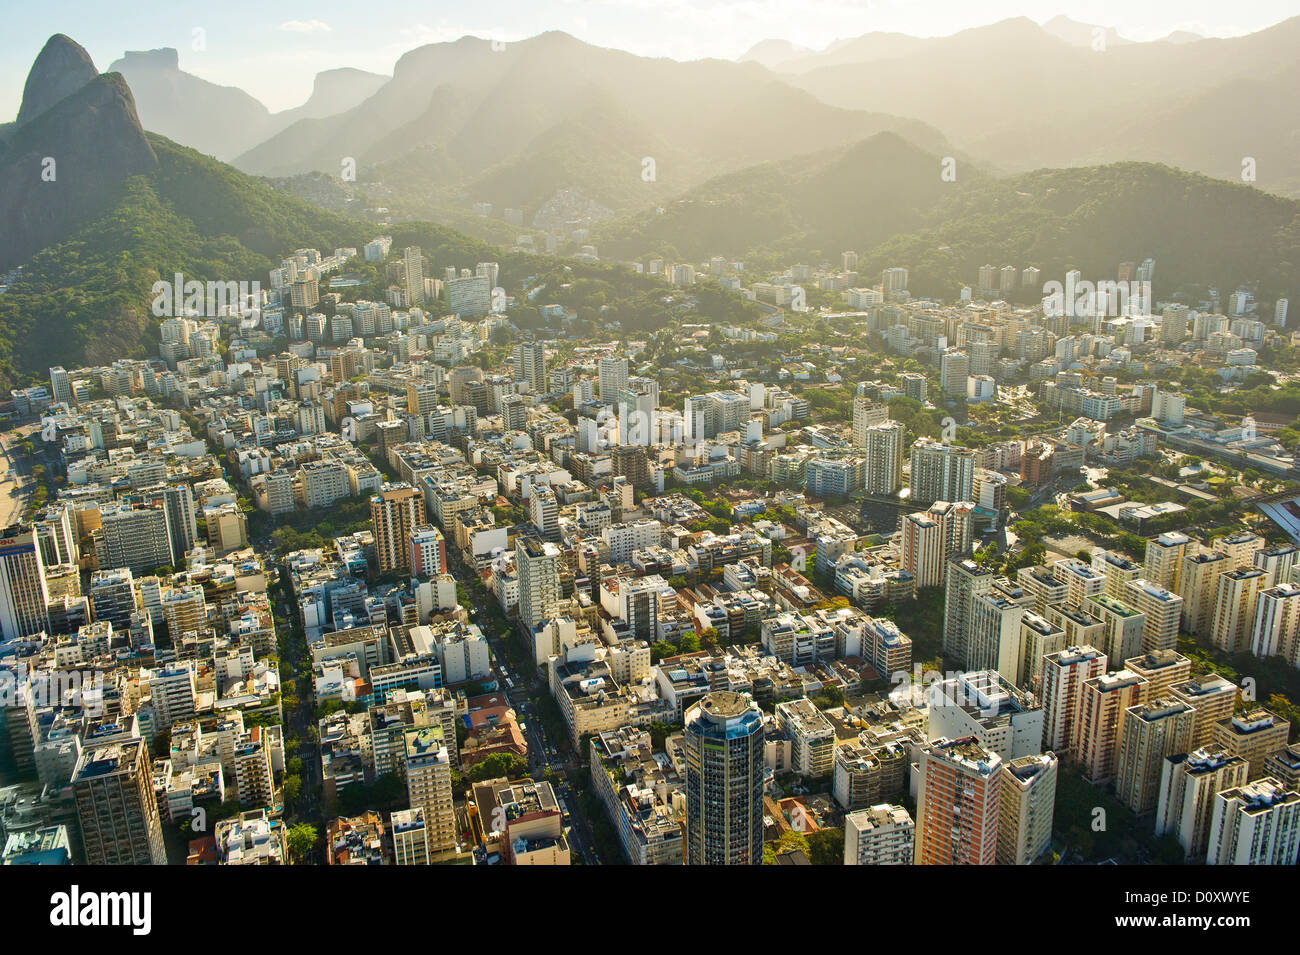 Aerial view of districts of Rio de Janeiro, Brazil - Stock Image